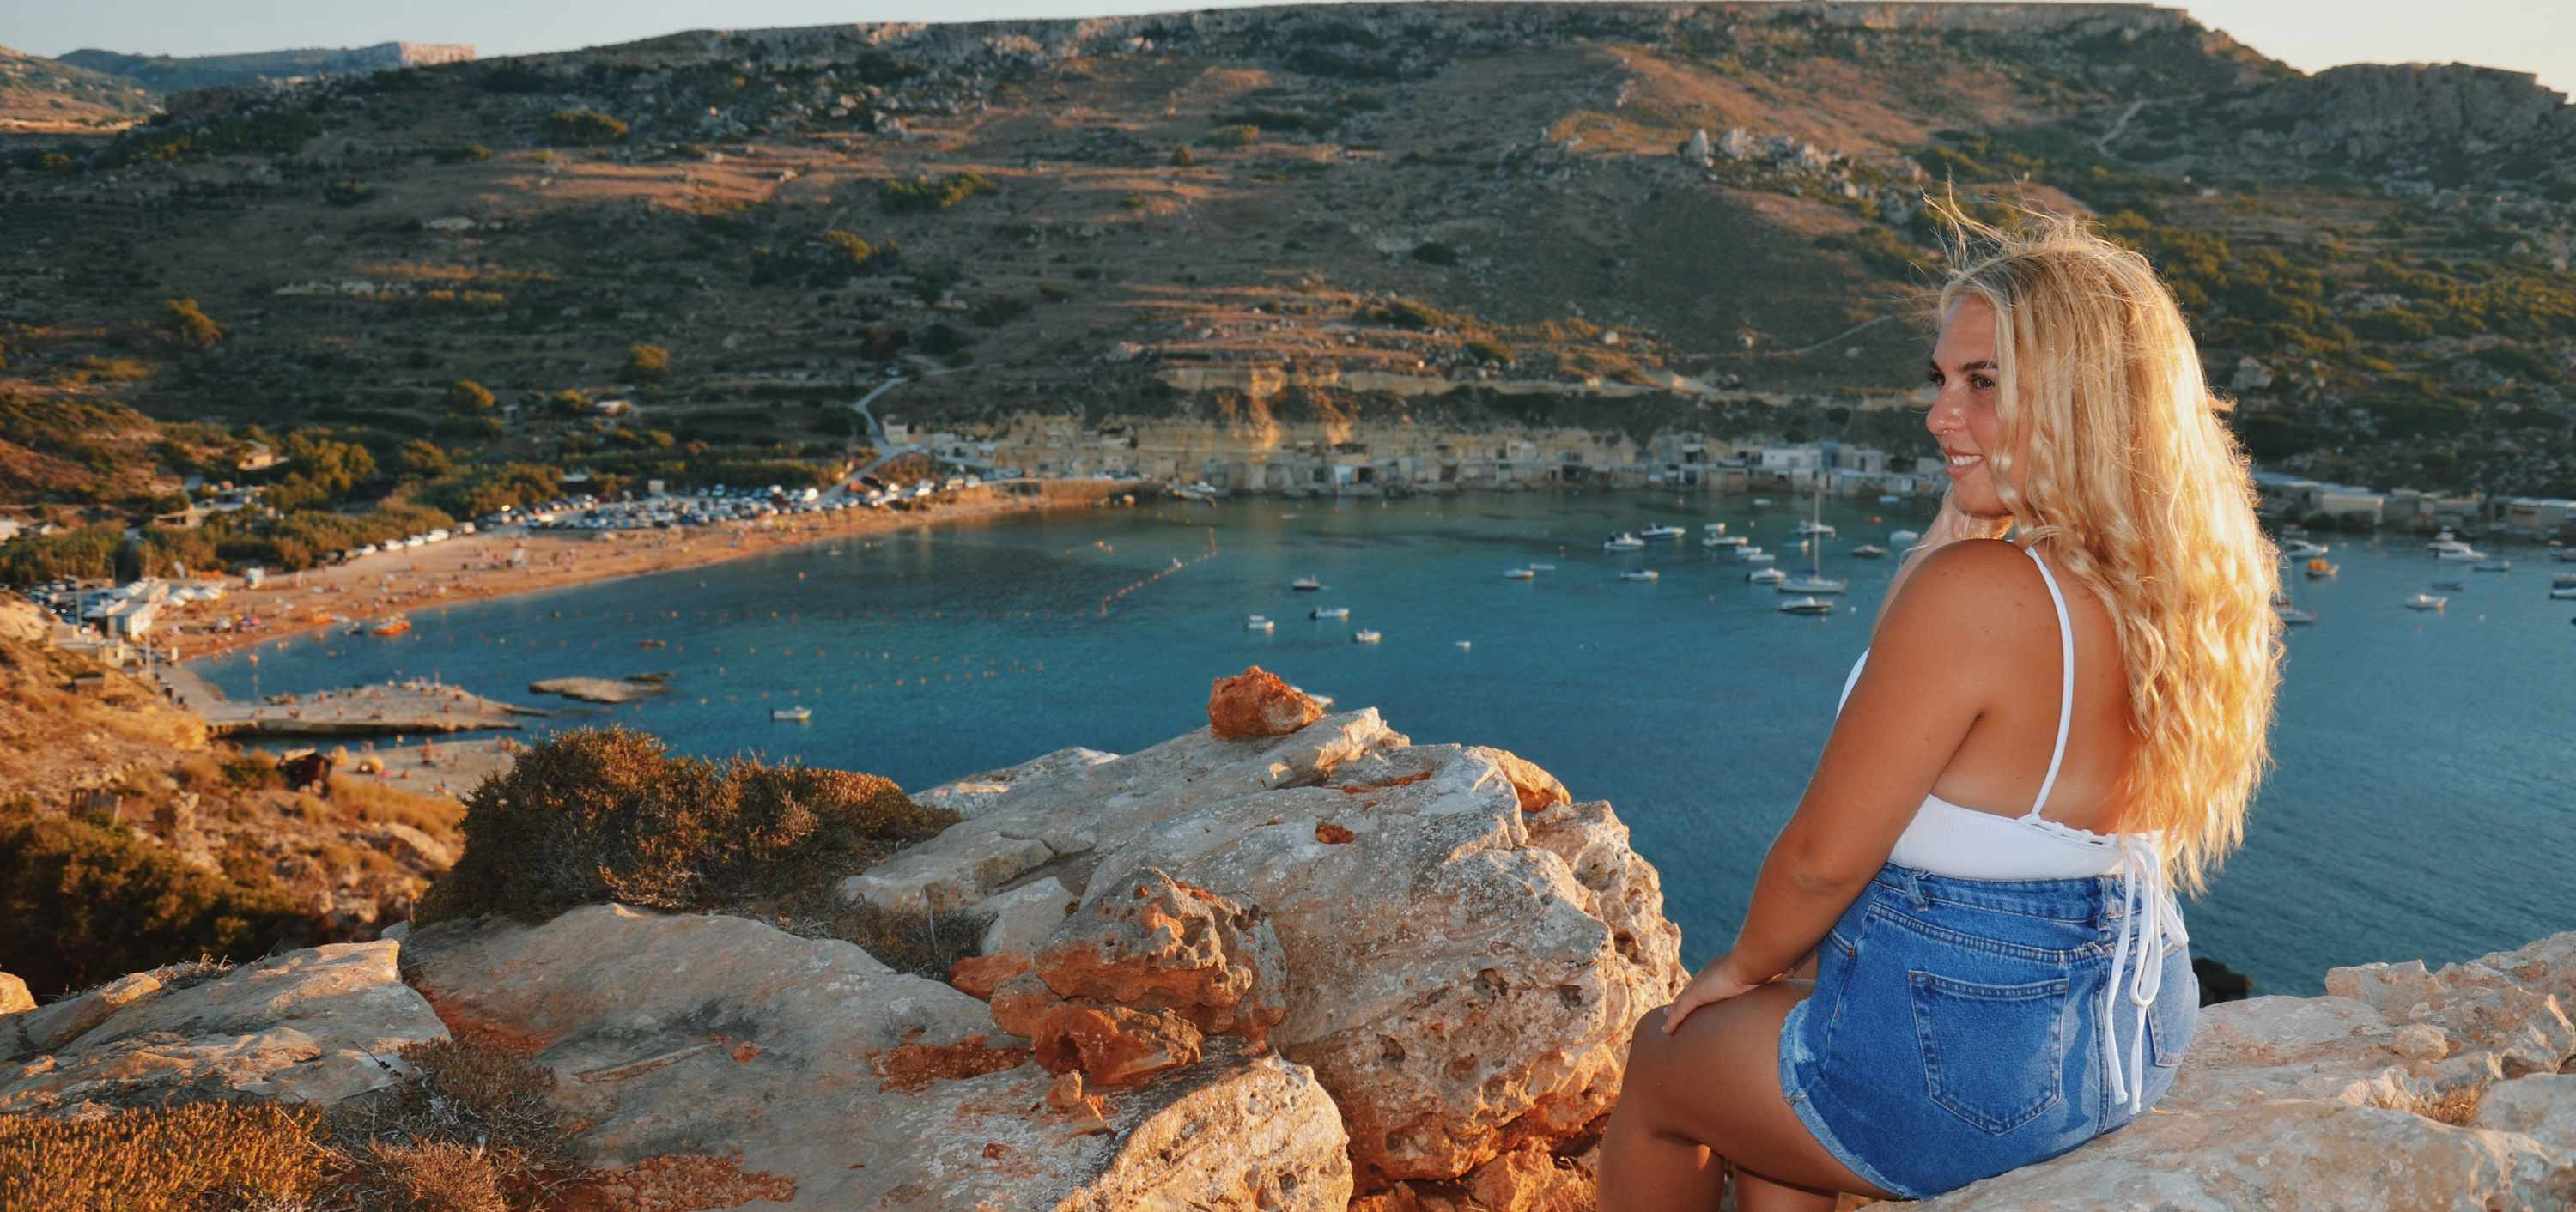 Meet Lara! 🙋‍♀️ She's Malta's Top Online Tour Guide!